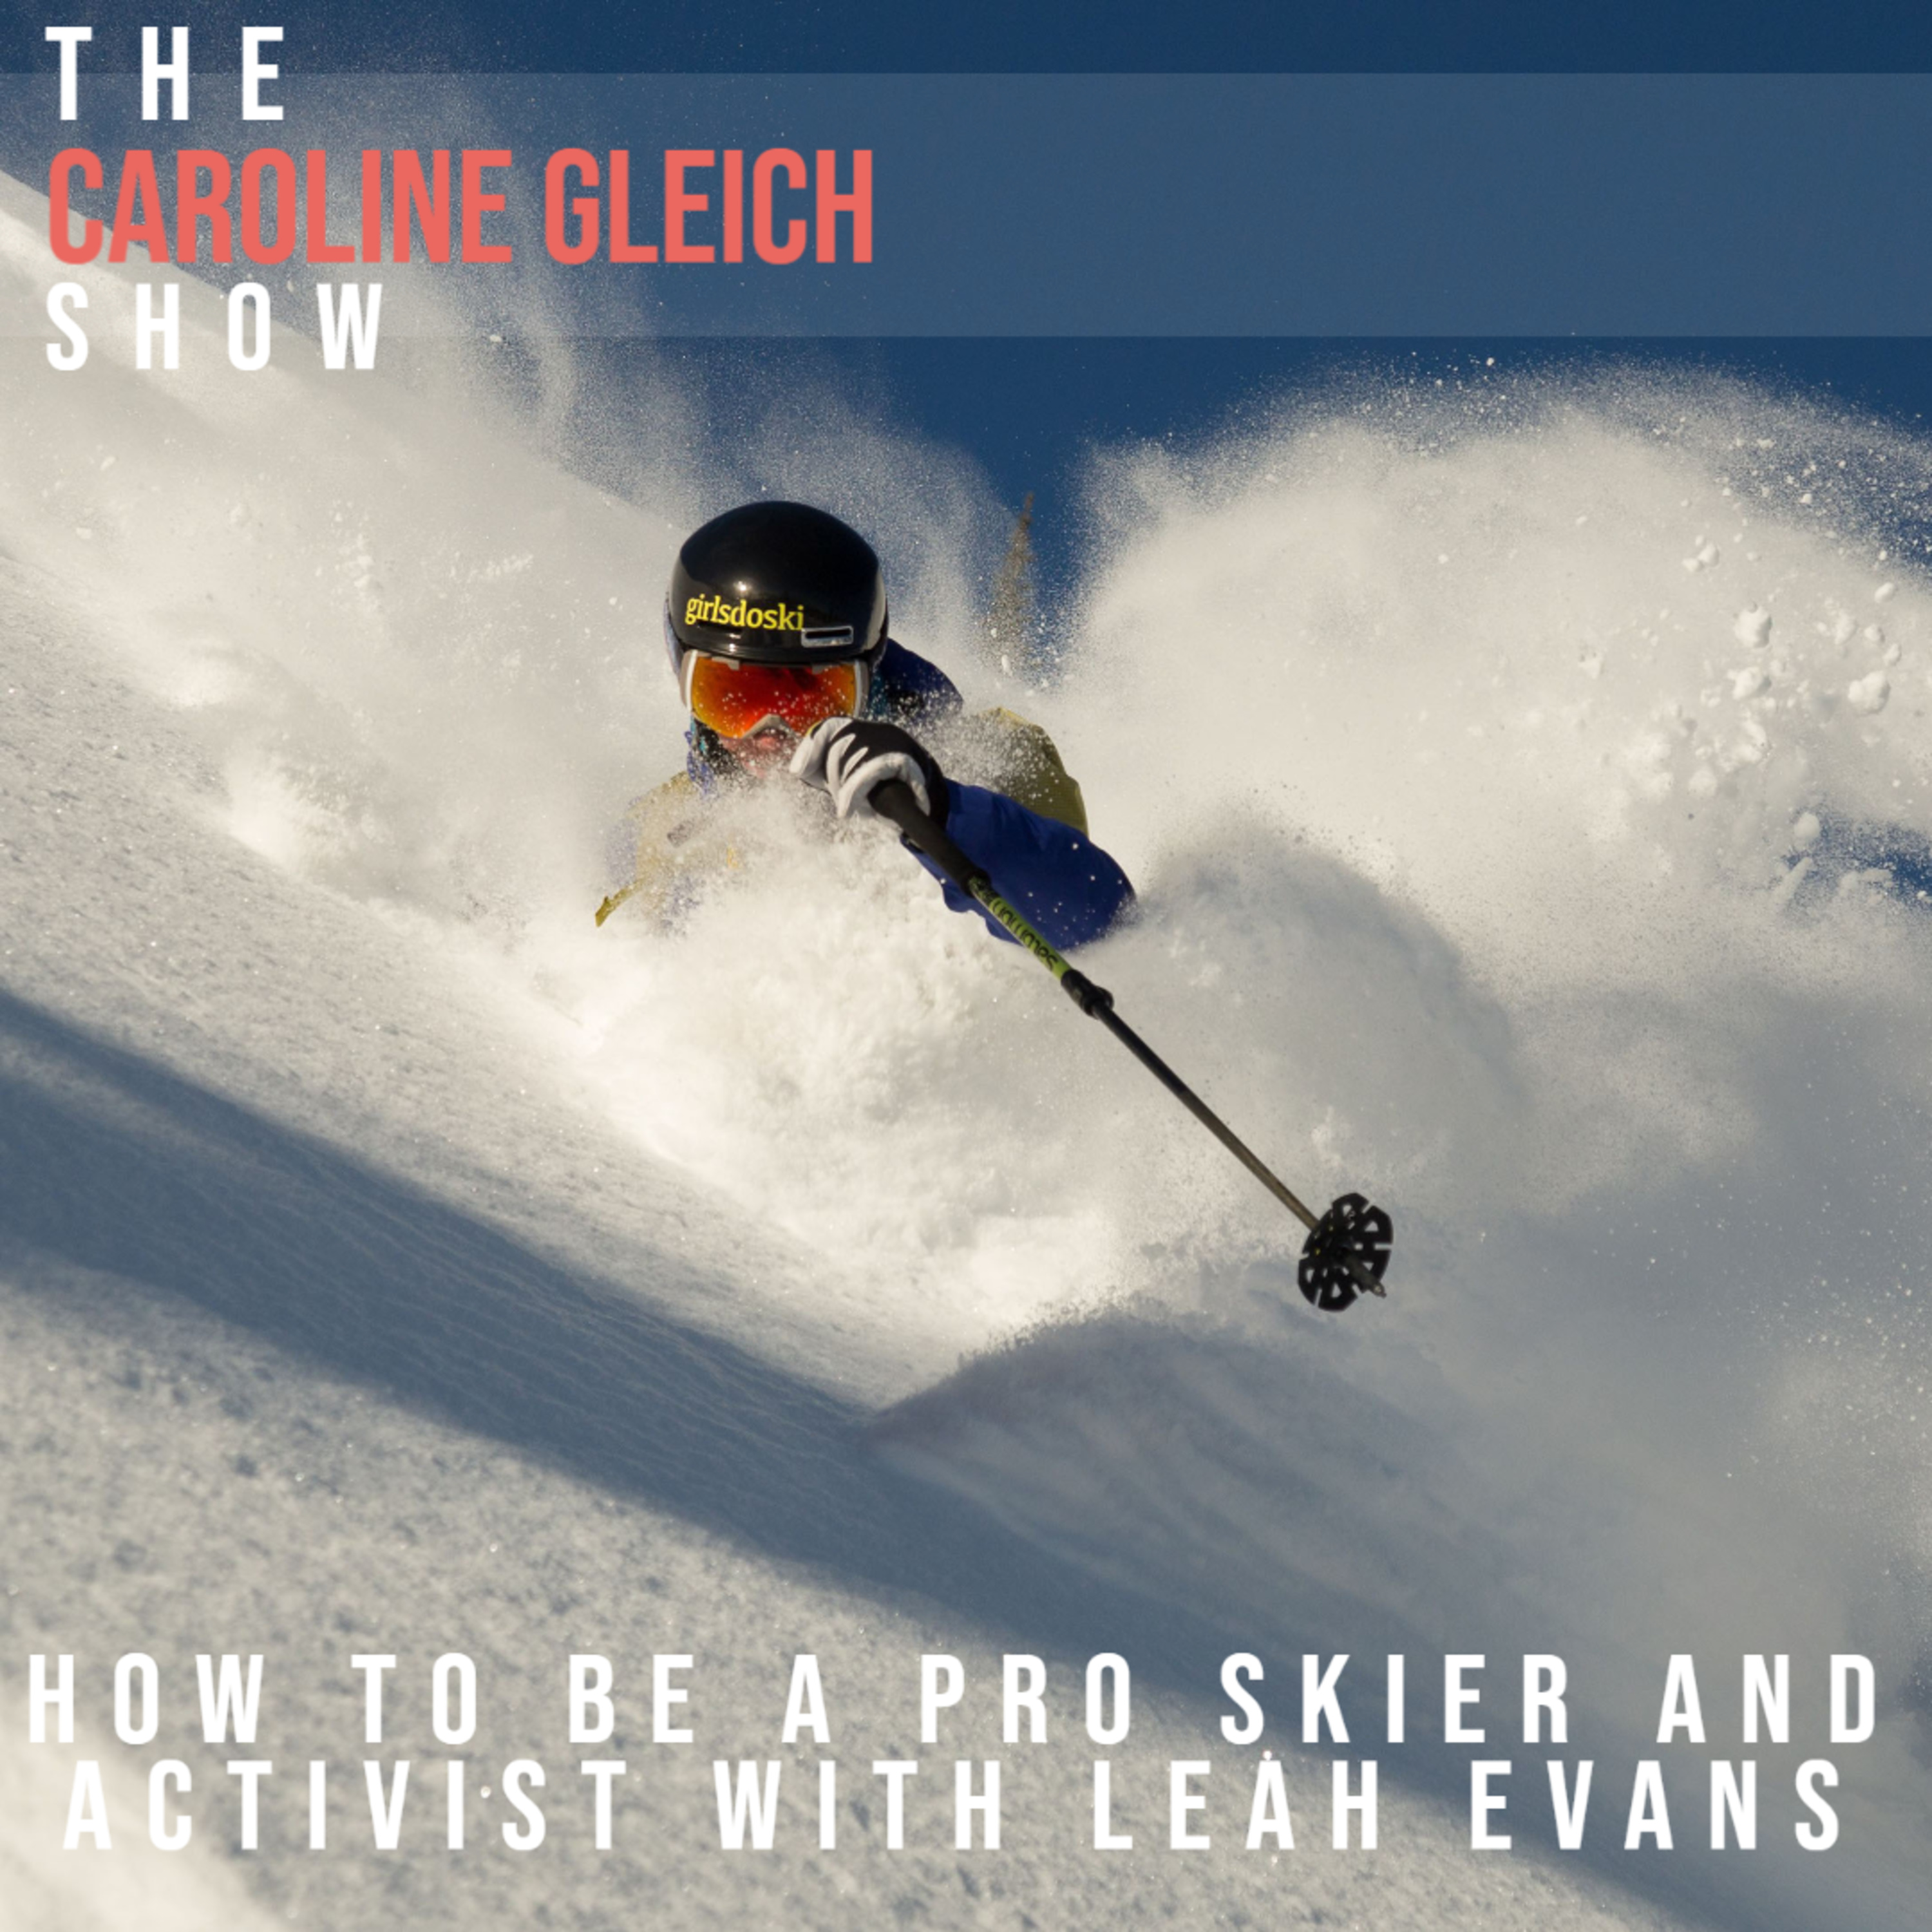 How to Be a Pro Skier and Activist With Leah Evans: Episode 10